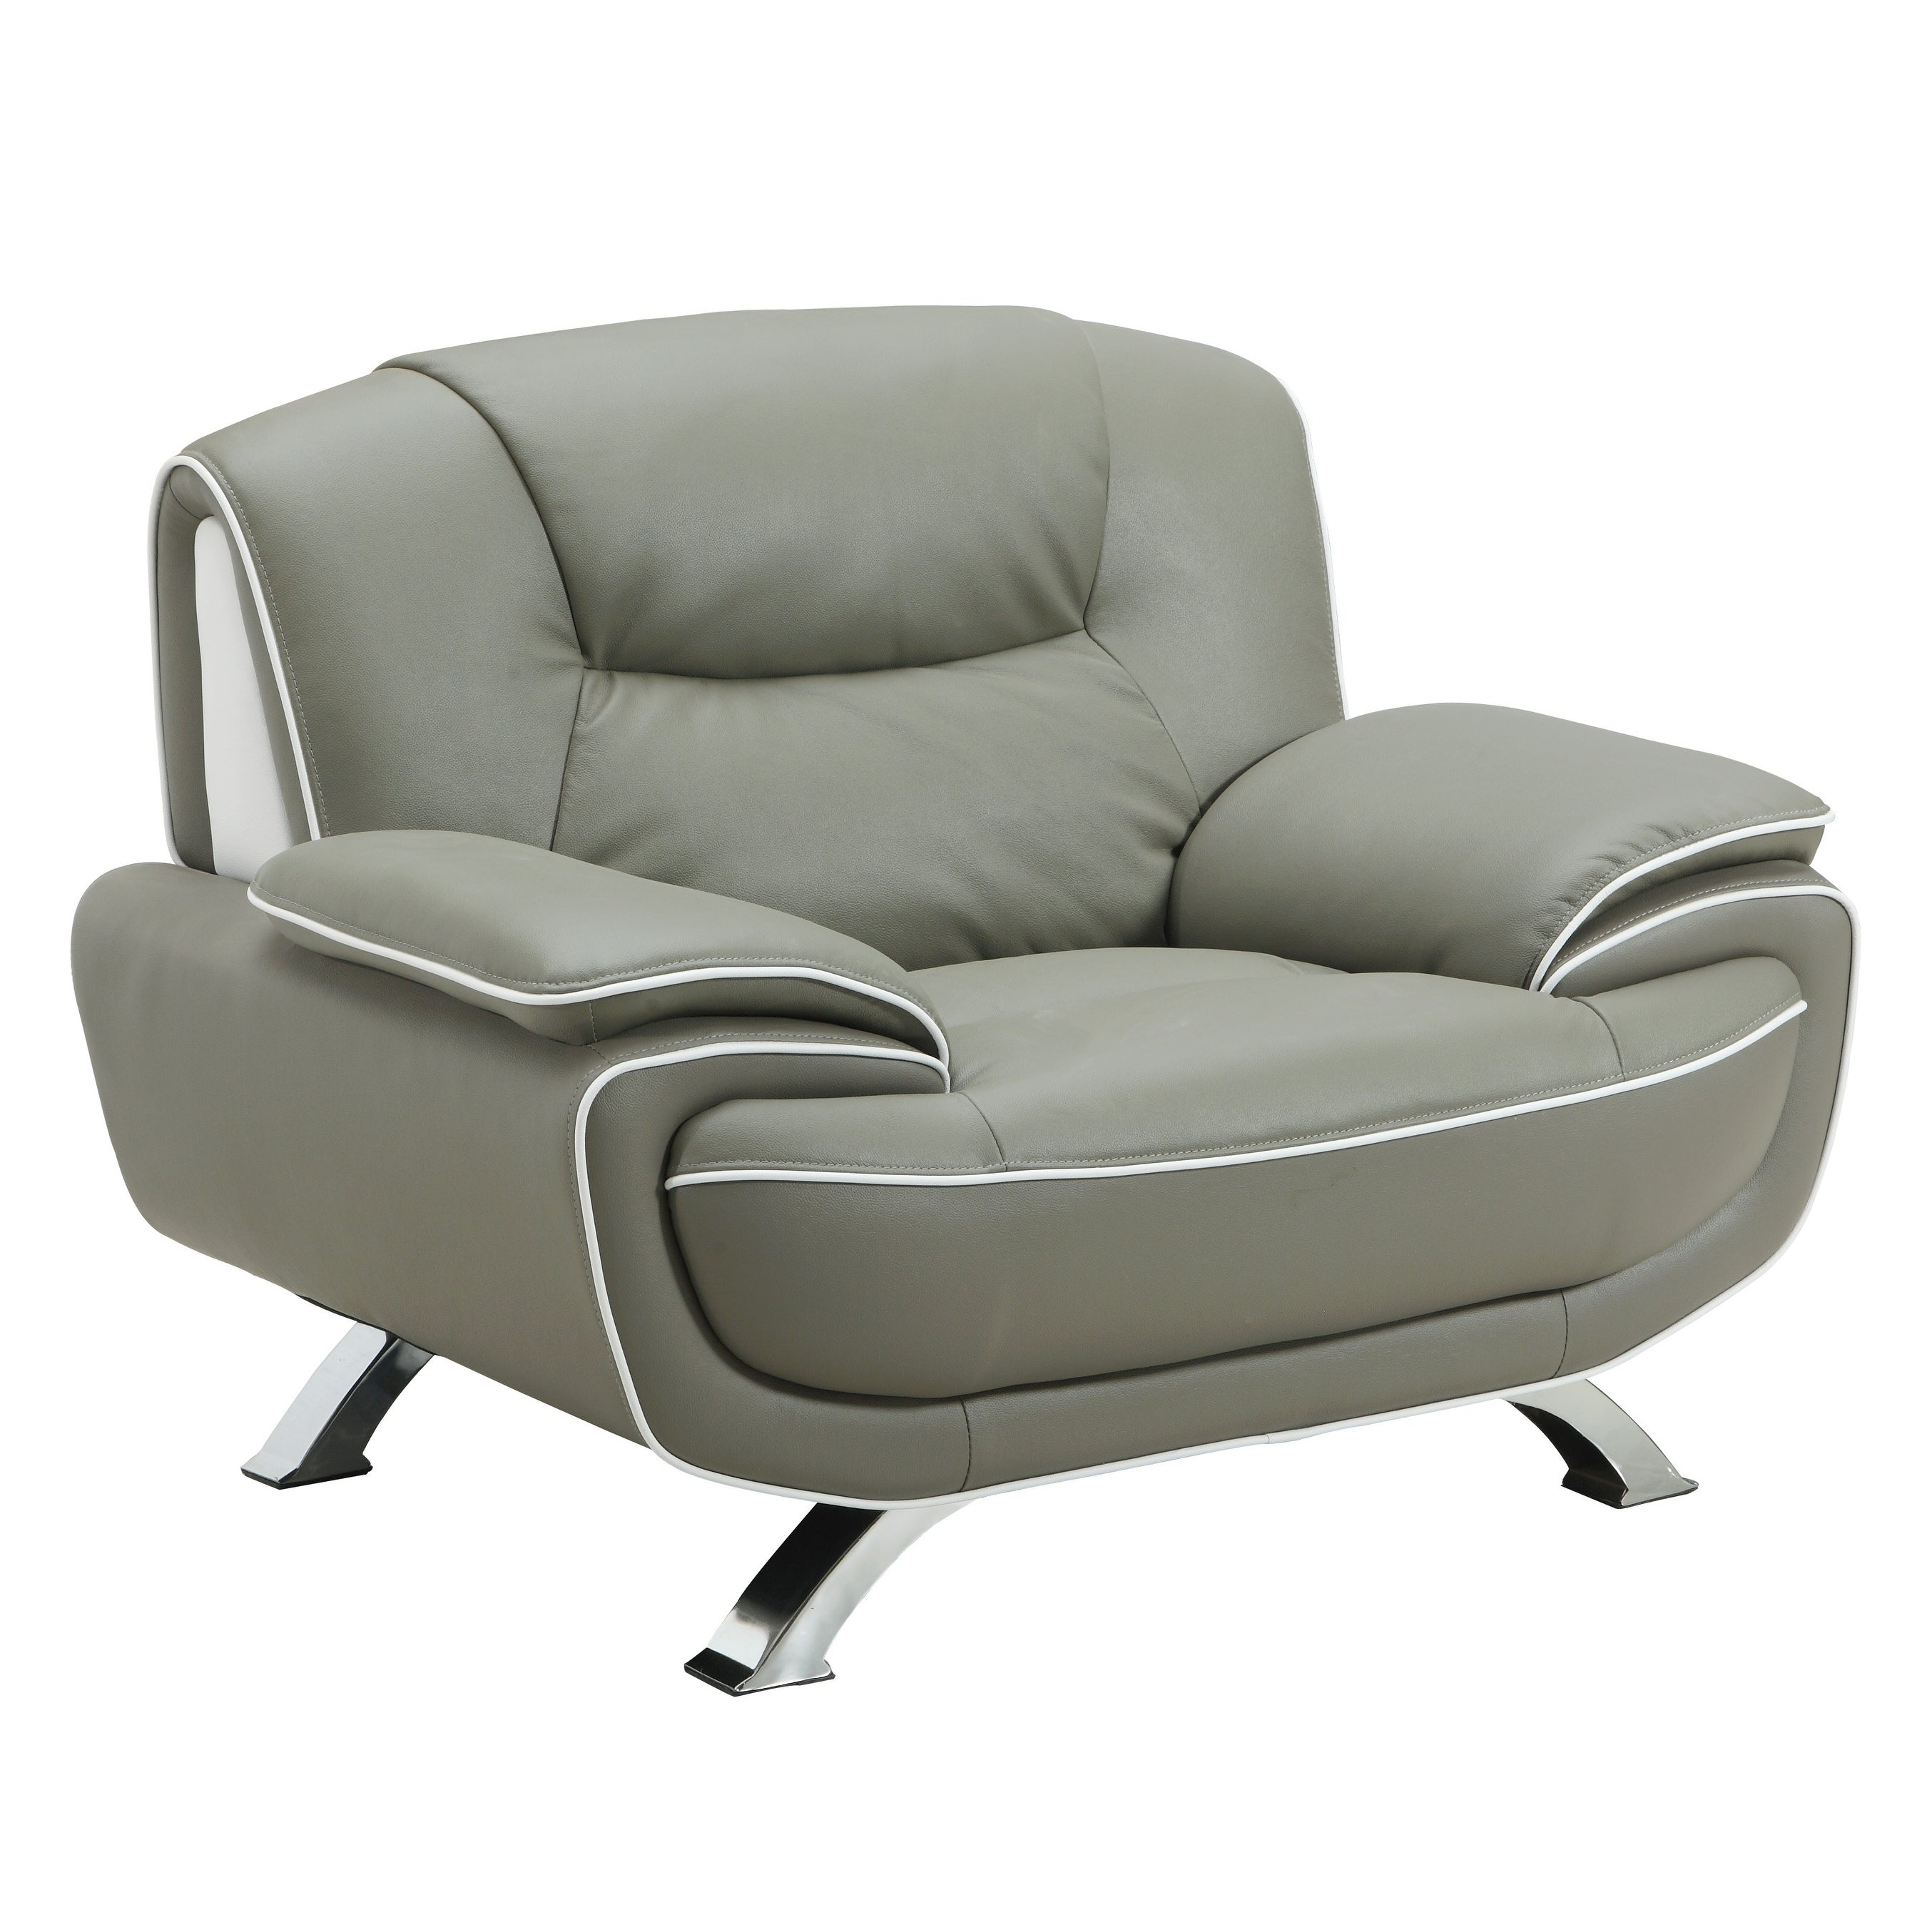 luxury leather chairs. global united industries olympia luxury leather/match upholstered living room chair (option: grey leather chairs